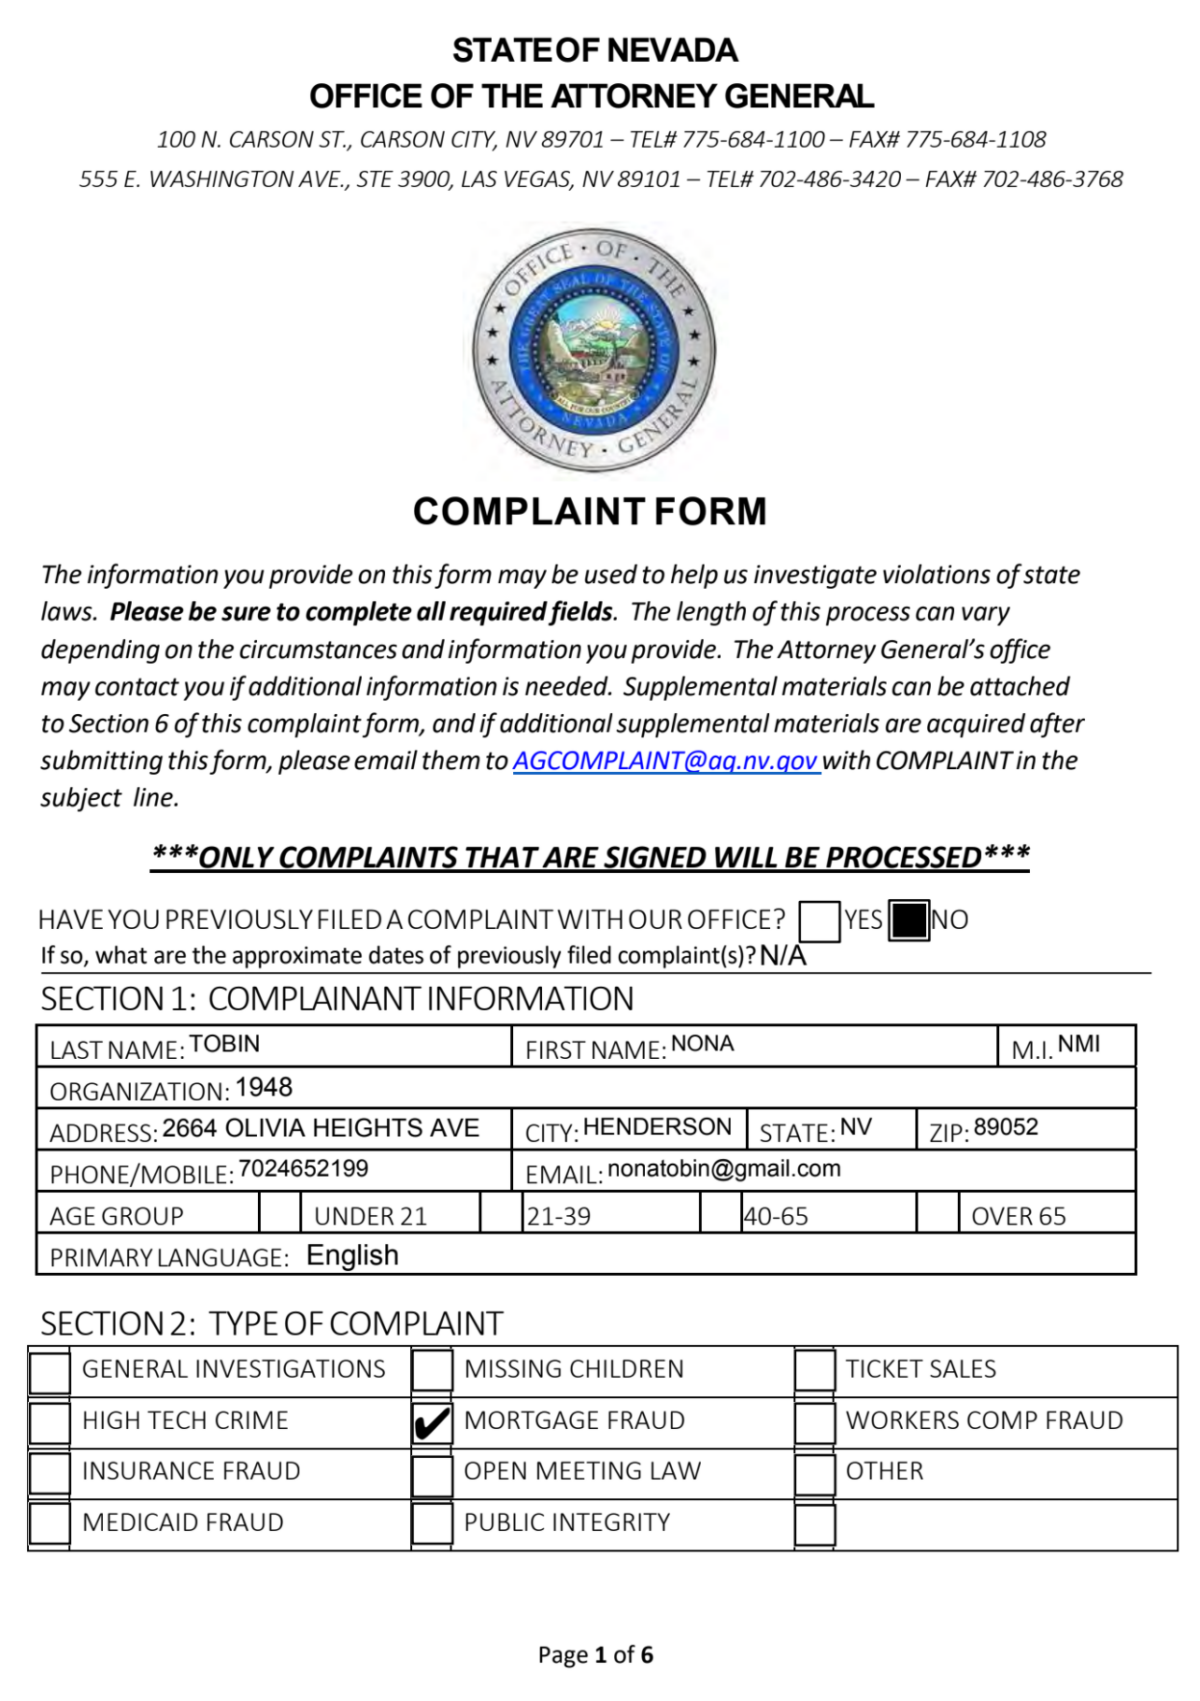 1st complaint to the Nevada Attorney General & exhibits